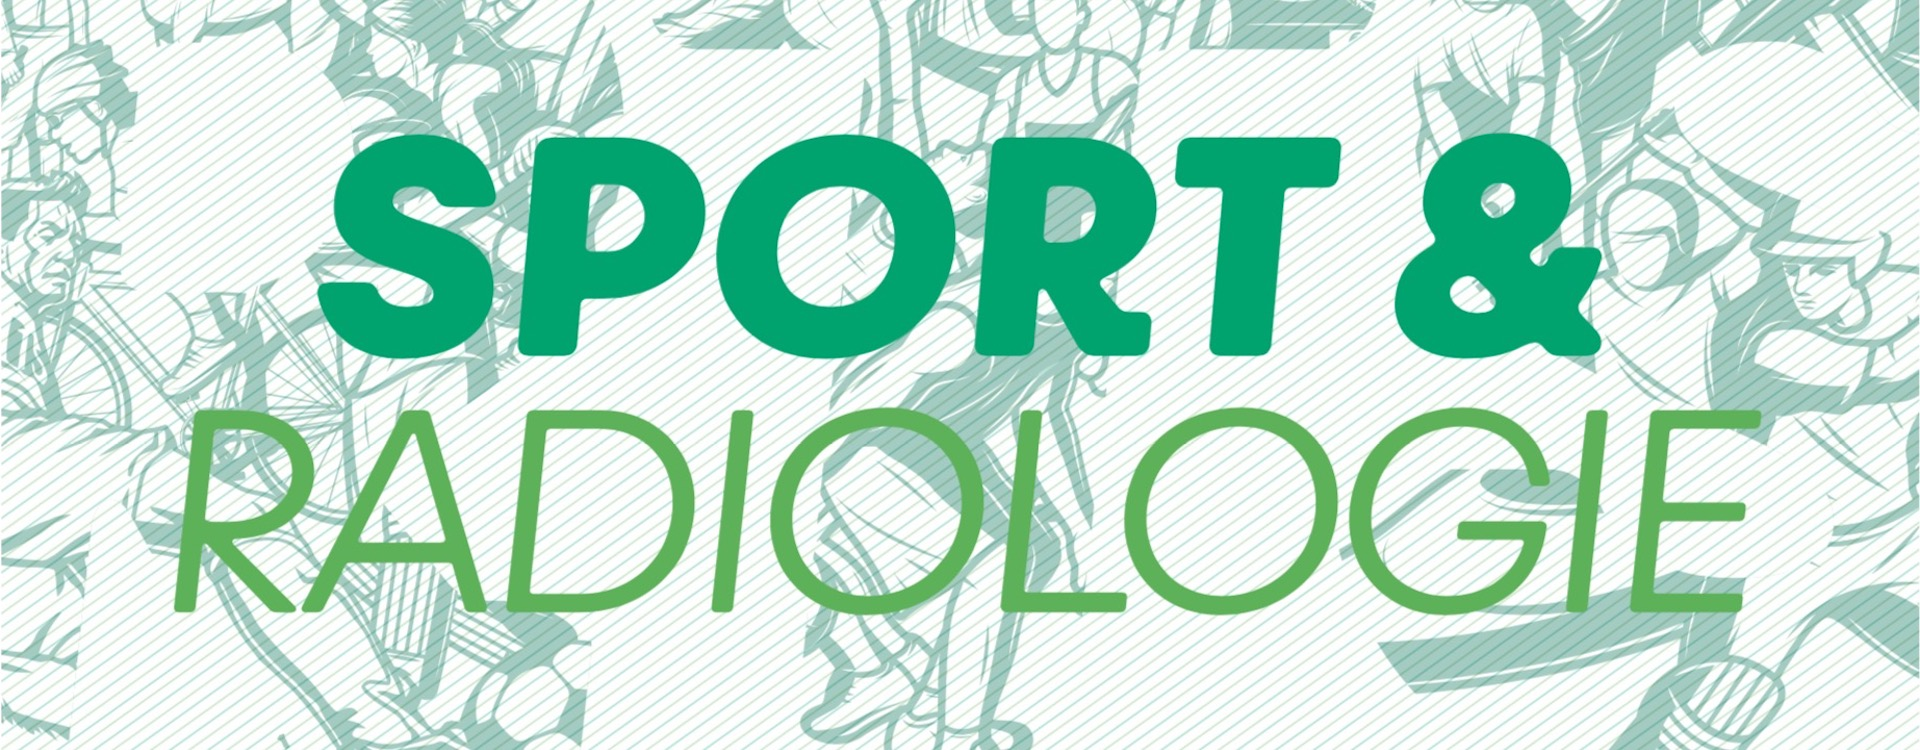 Internationaler Tag der Radiologie 2019 – Sport & Radiologie